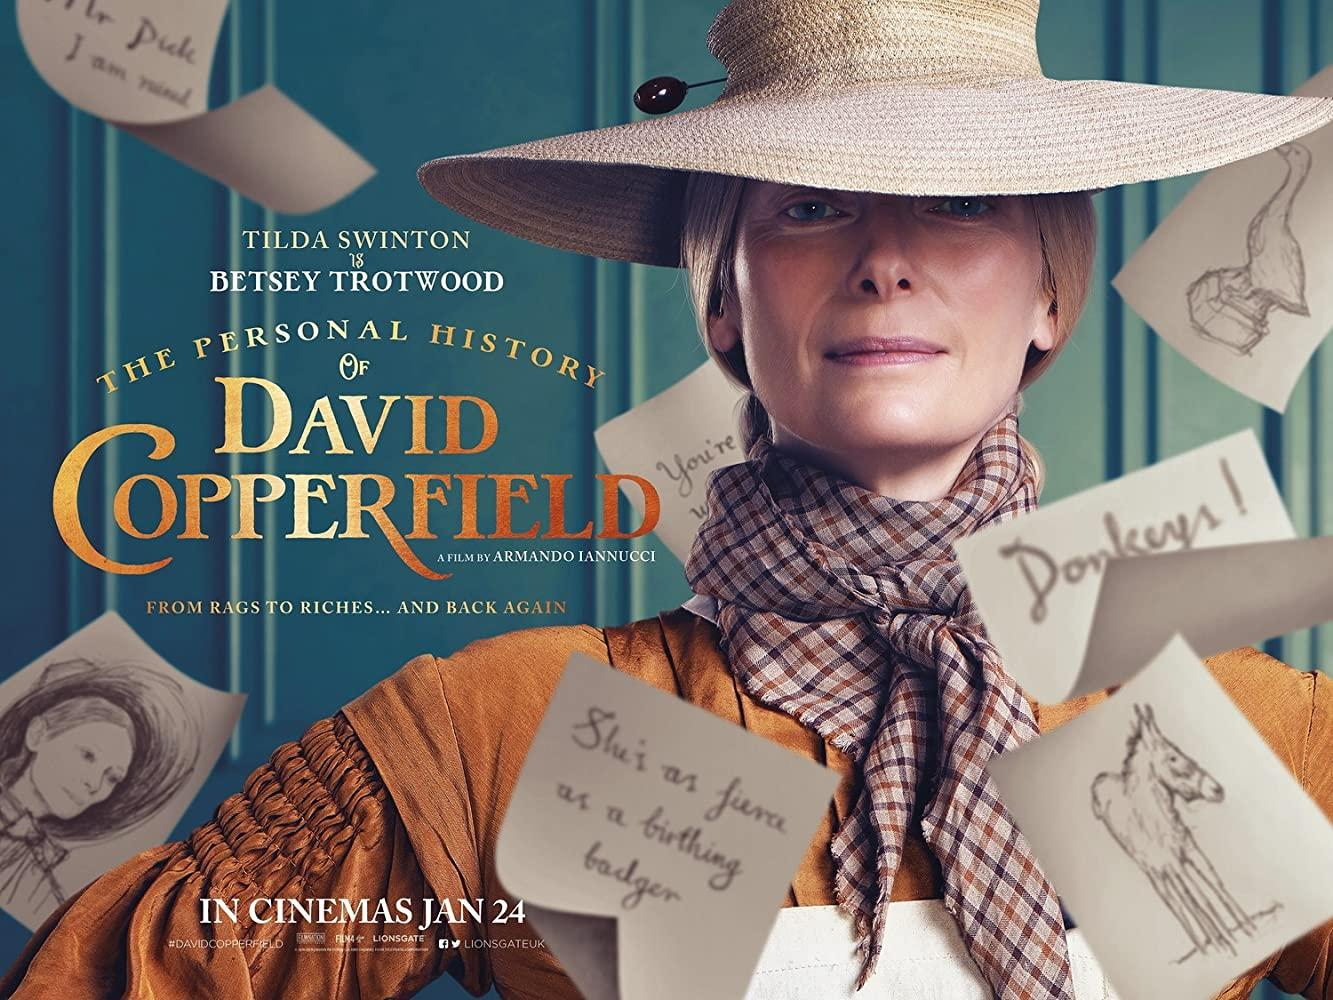 مشاهدة فيلم The Personal History of David Copperfield (2019) مترجم HD اون لاين